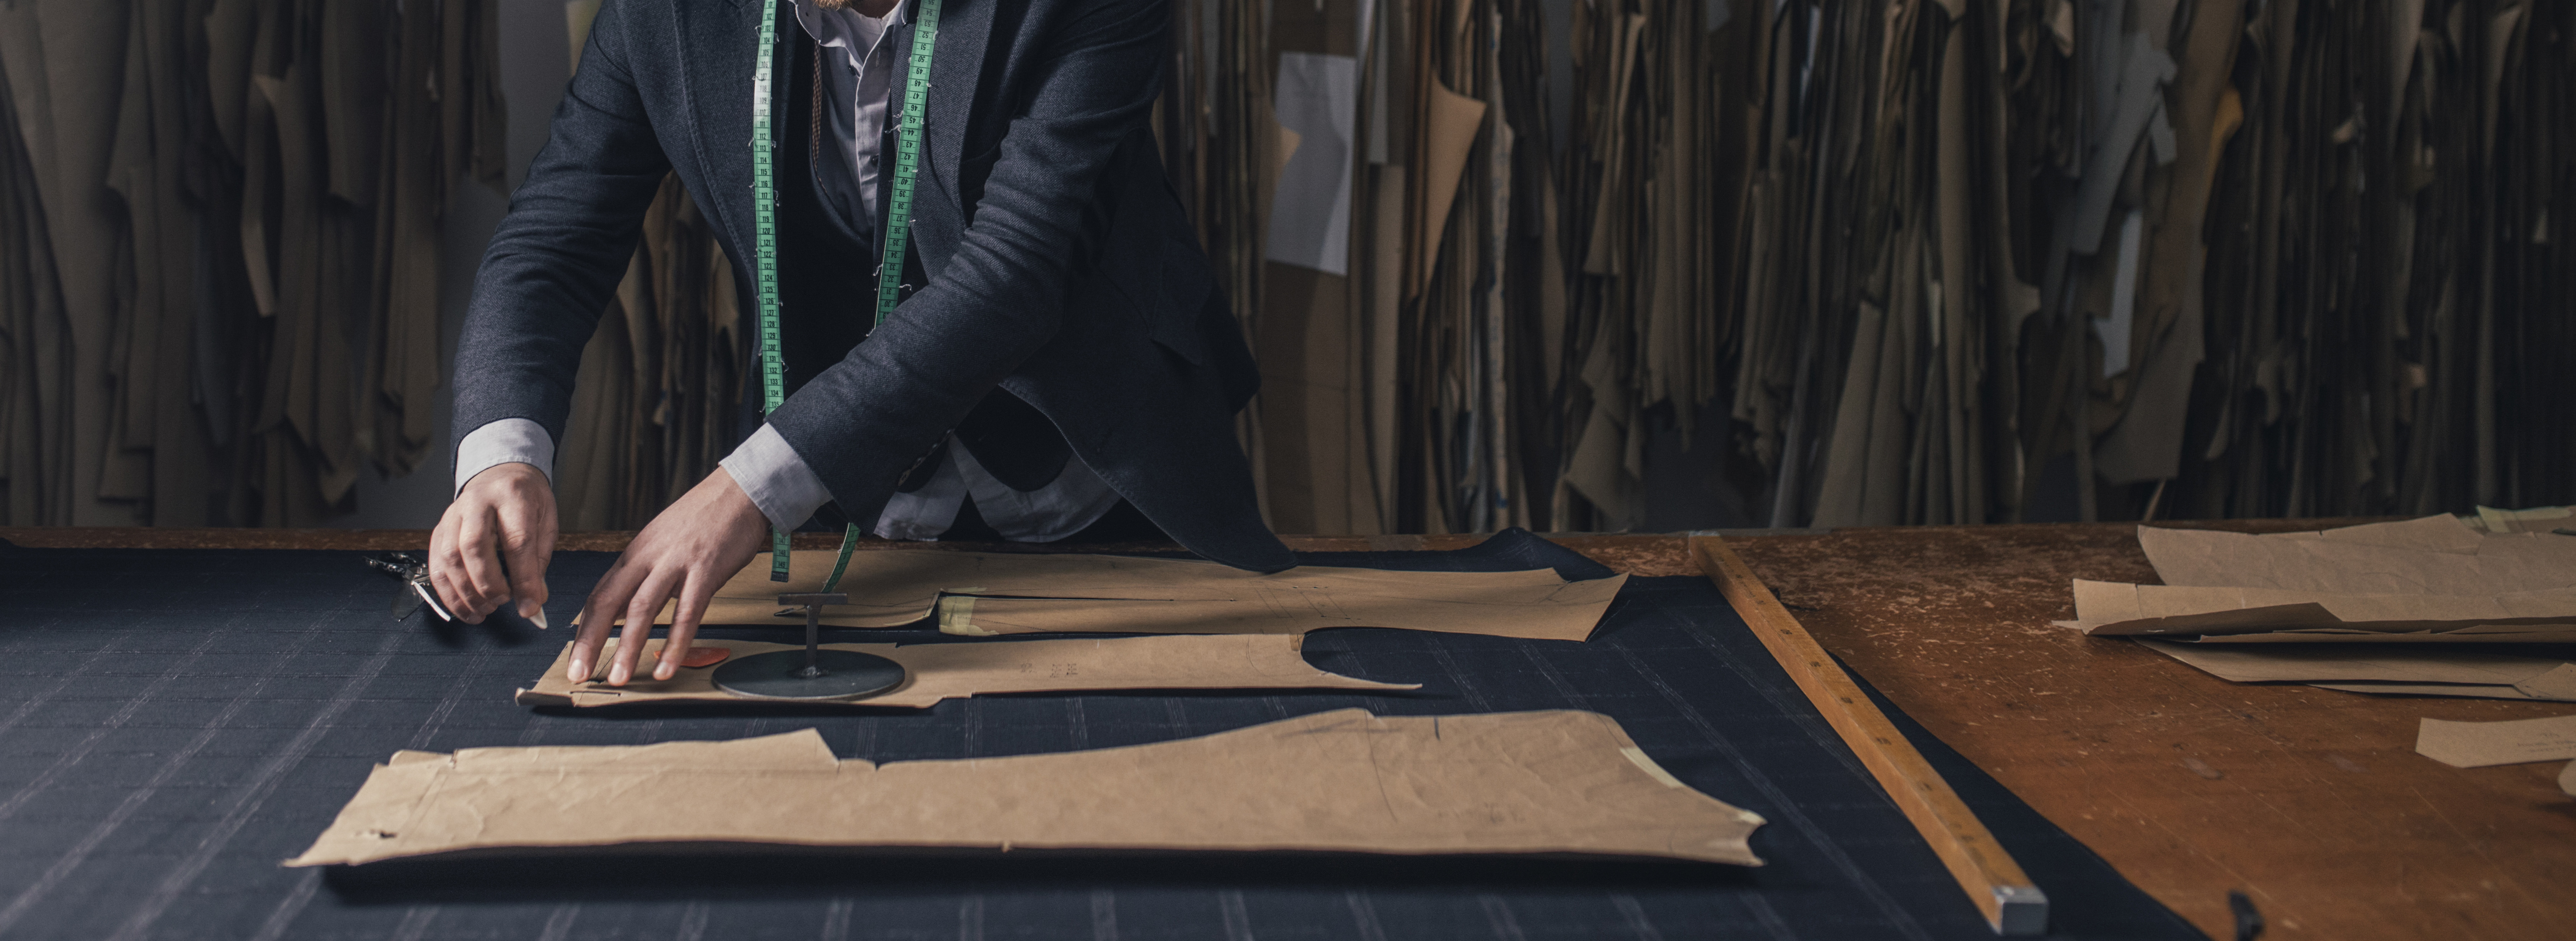 MADE TO MEASURE SUITS - WEDDING OUTFITS